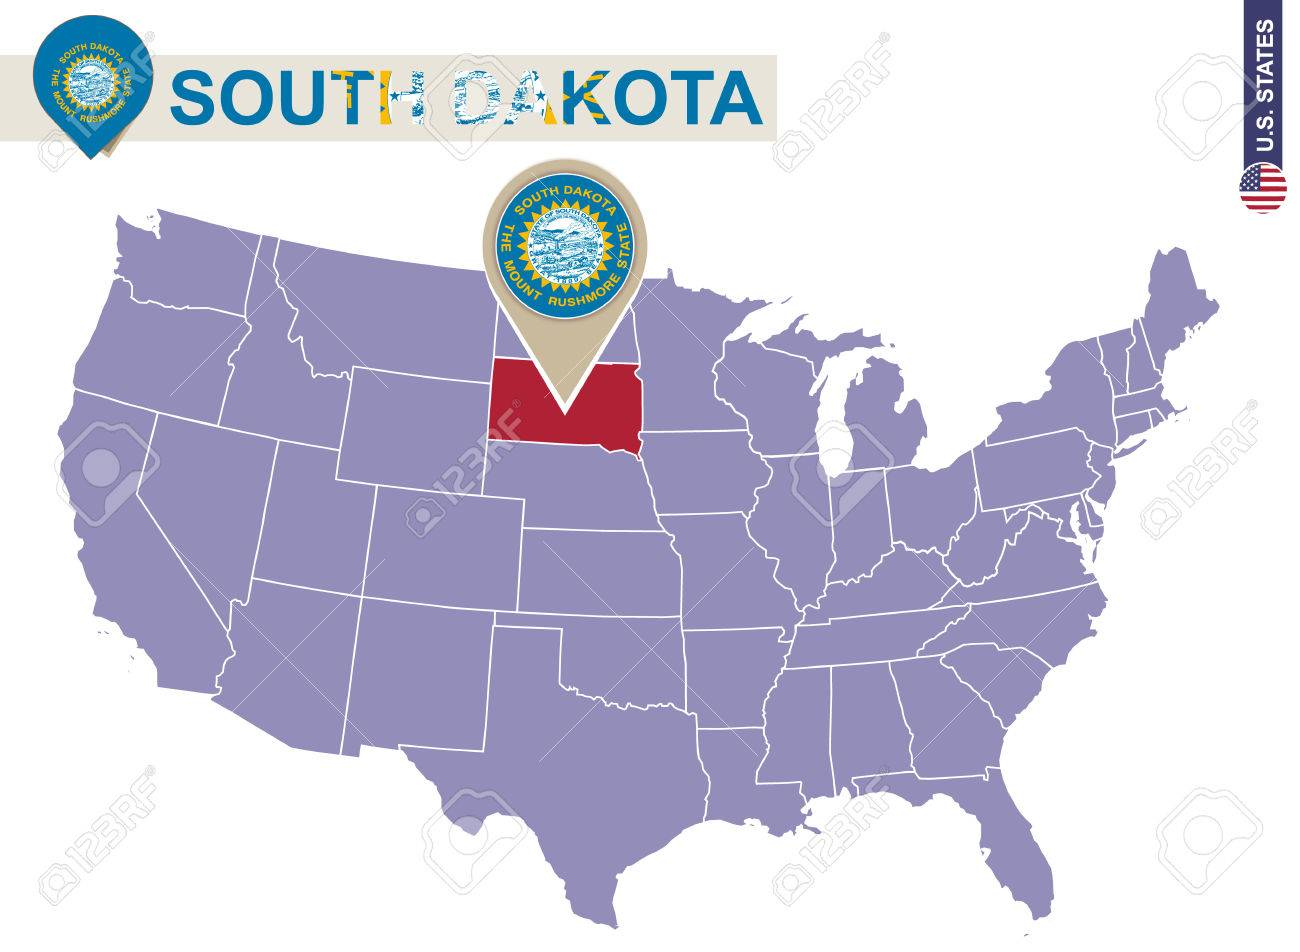 South Dakota Location On The US Map North Dakota Ipl Stately - North dakota map usa